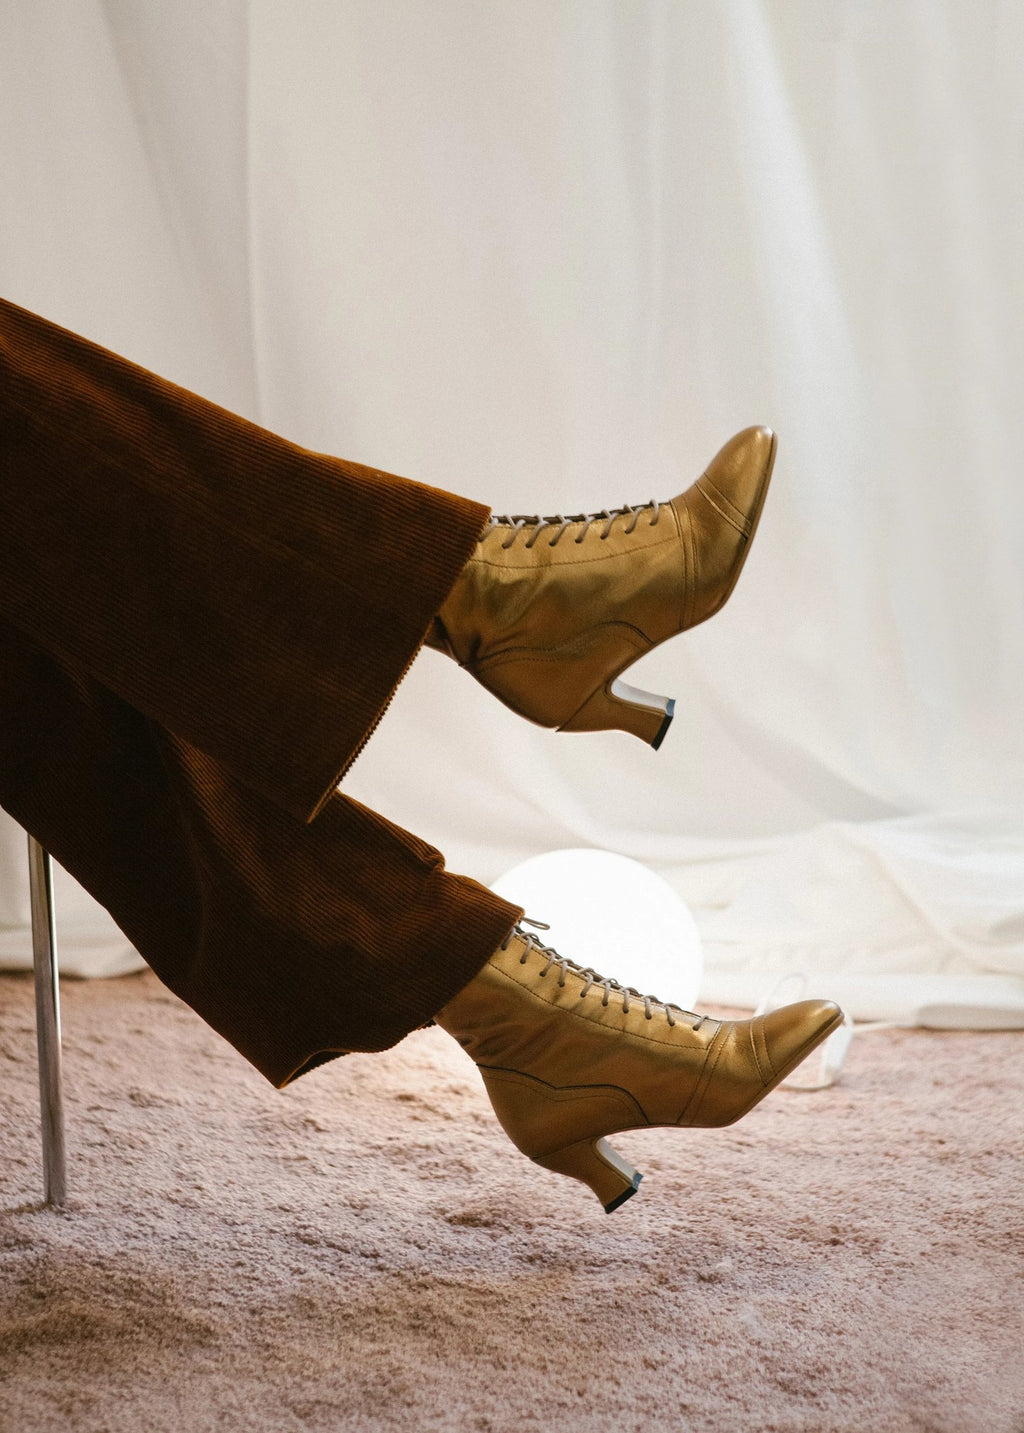 Frida bronze metallic leather vintage inspired ankle boots by Miss L Fire